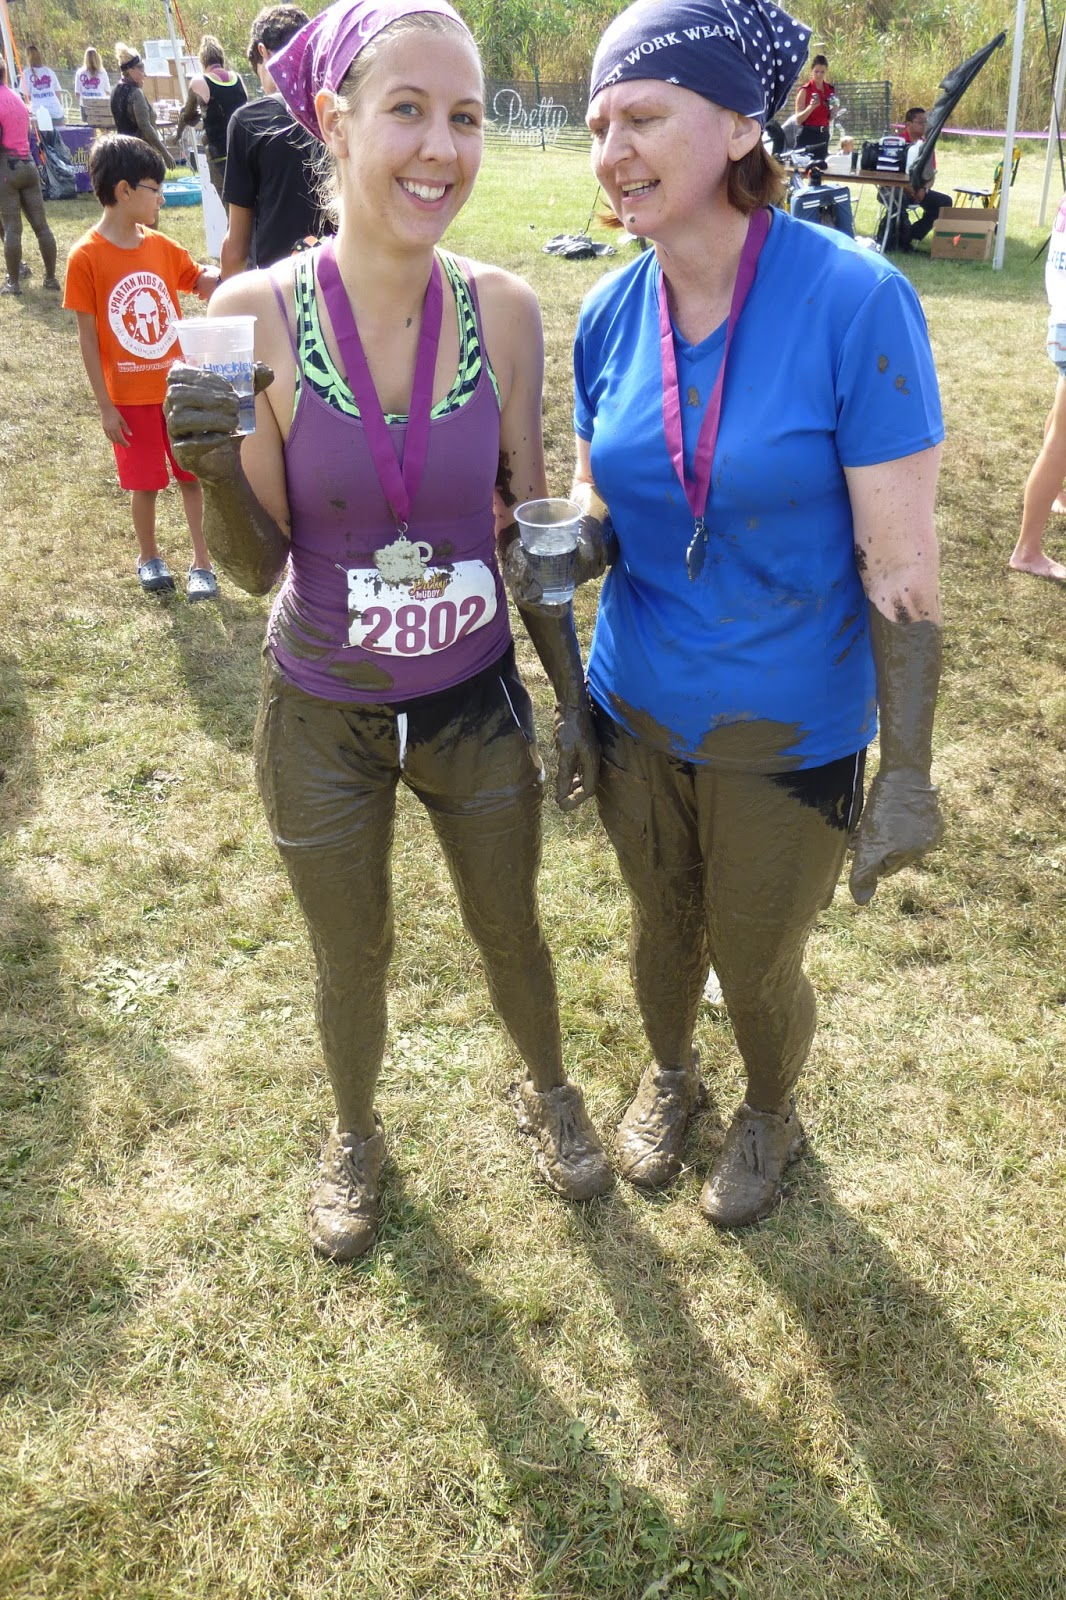 friend-mom-shows-panties I felt good after the run, and was only a little tired later in the day, but I am sore this morning. When I woke up I limped to the bathroom, ...